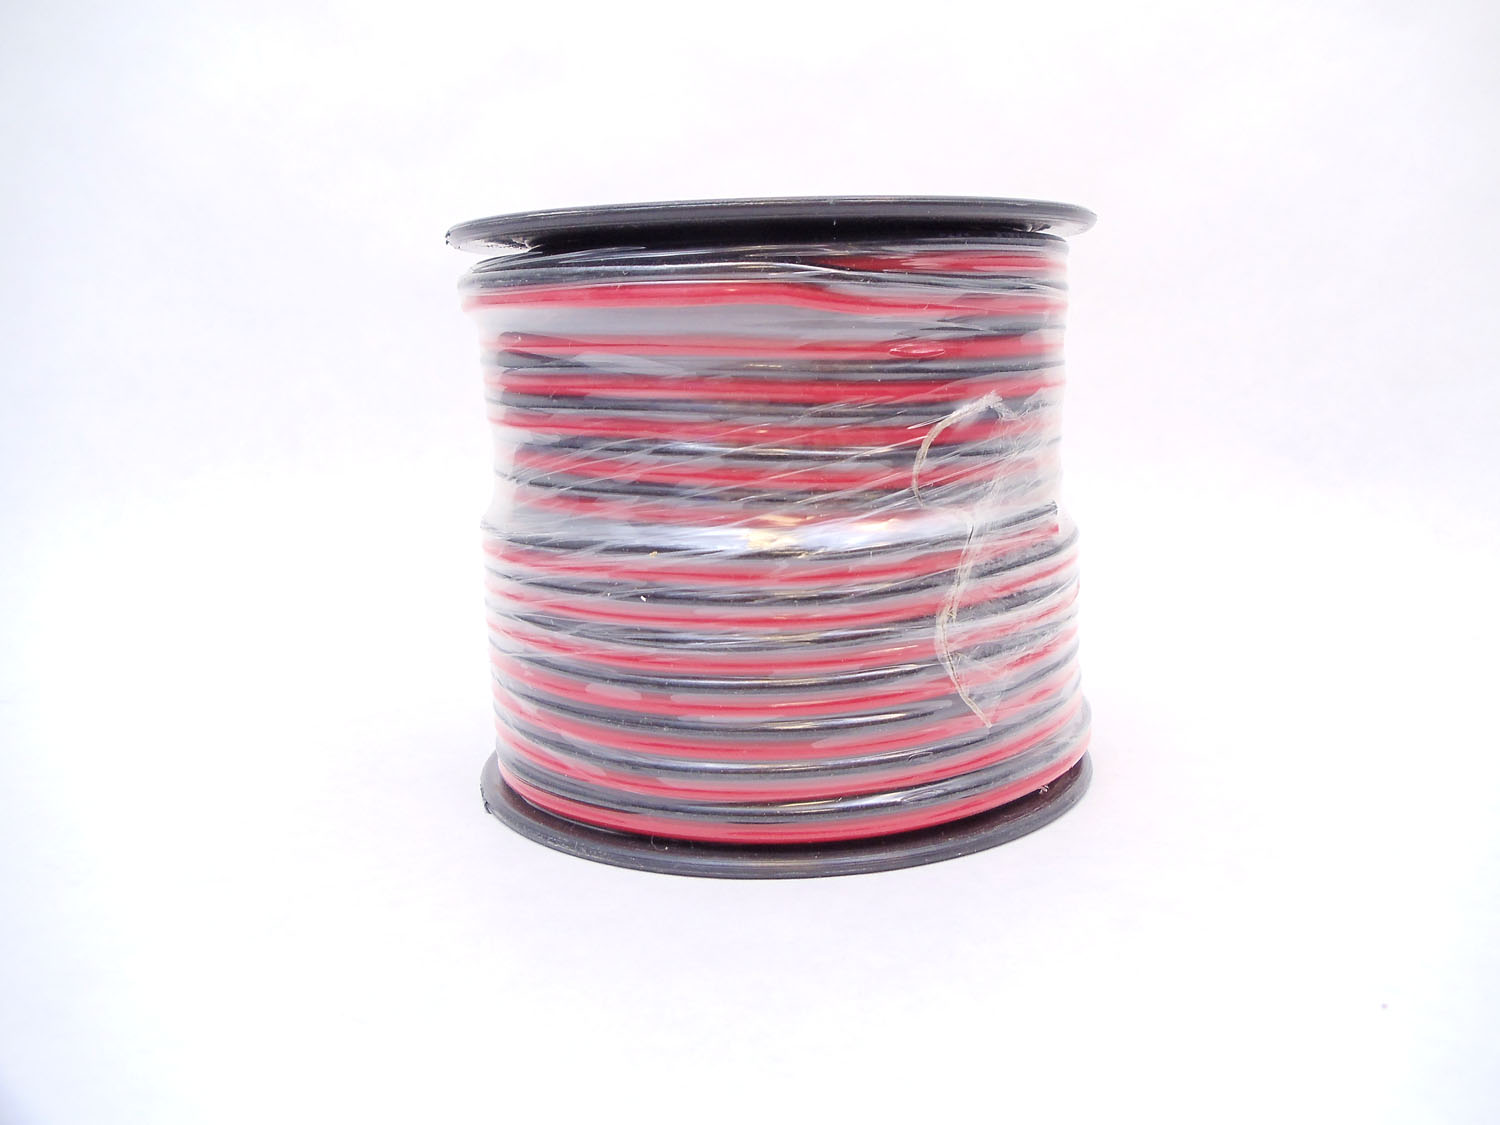 18 GAUGE ZIP WIRE (RED/BLACK) 100 FT SPOOL